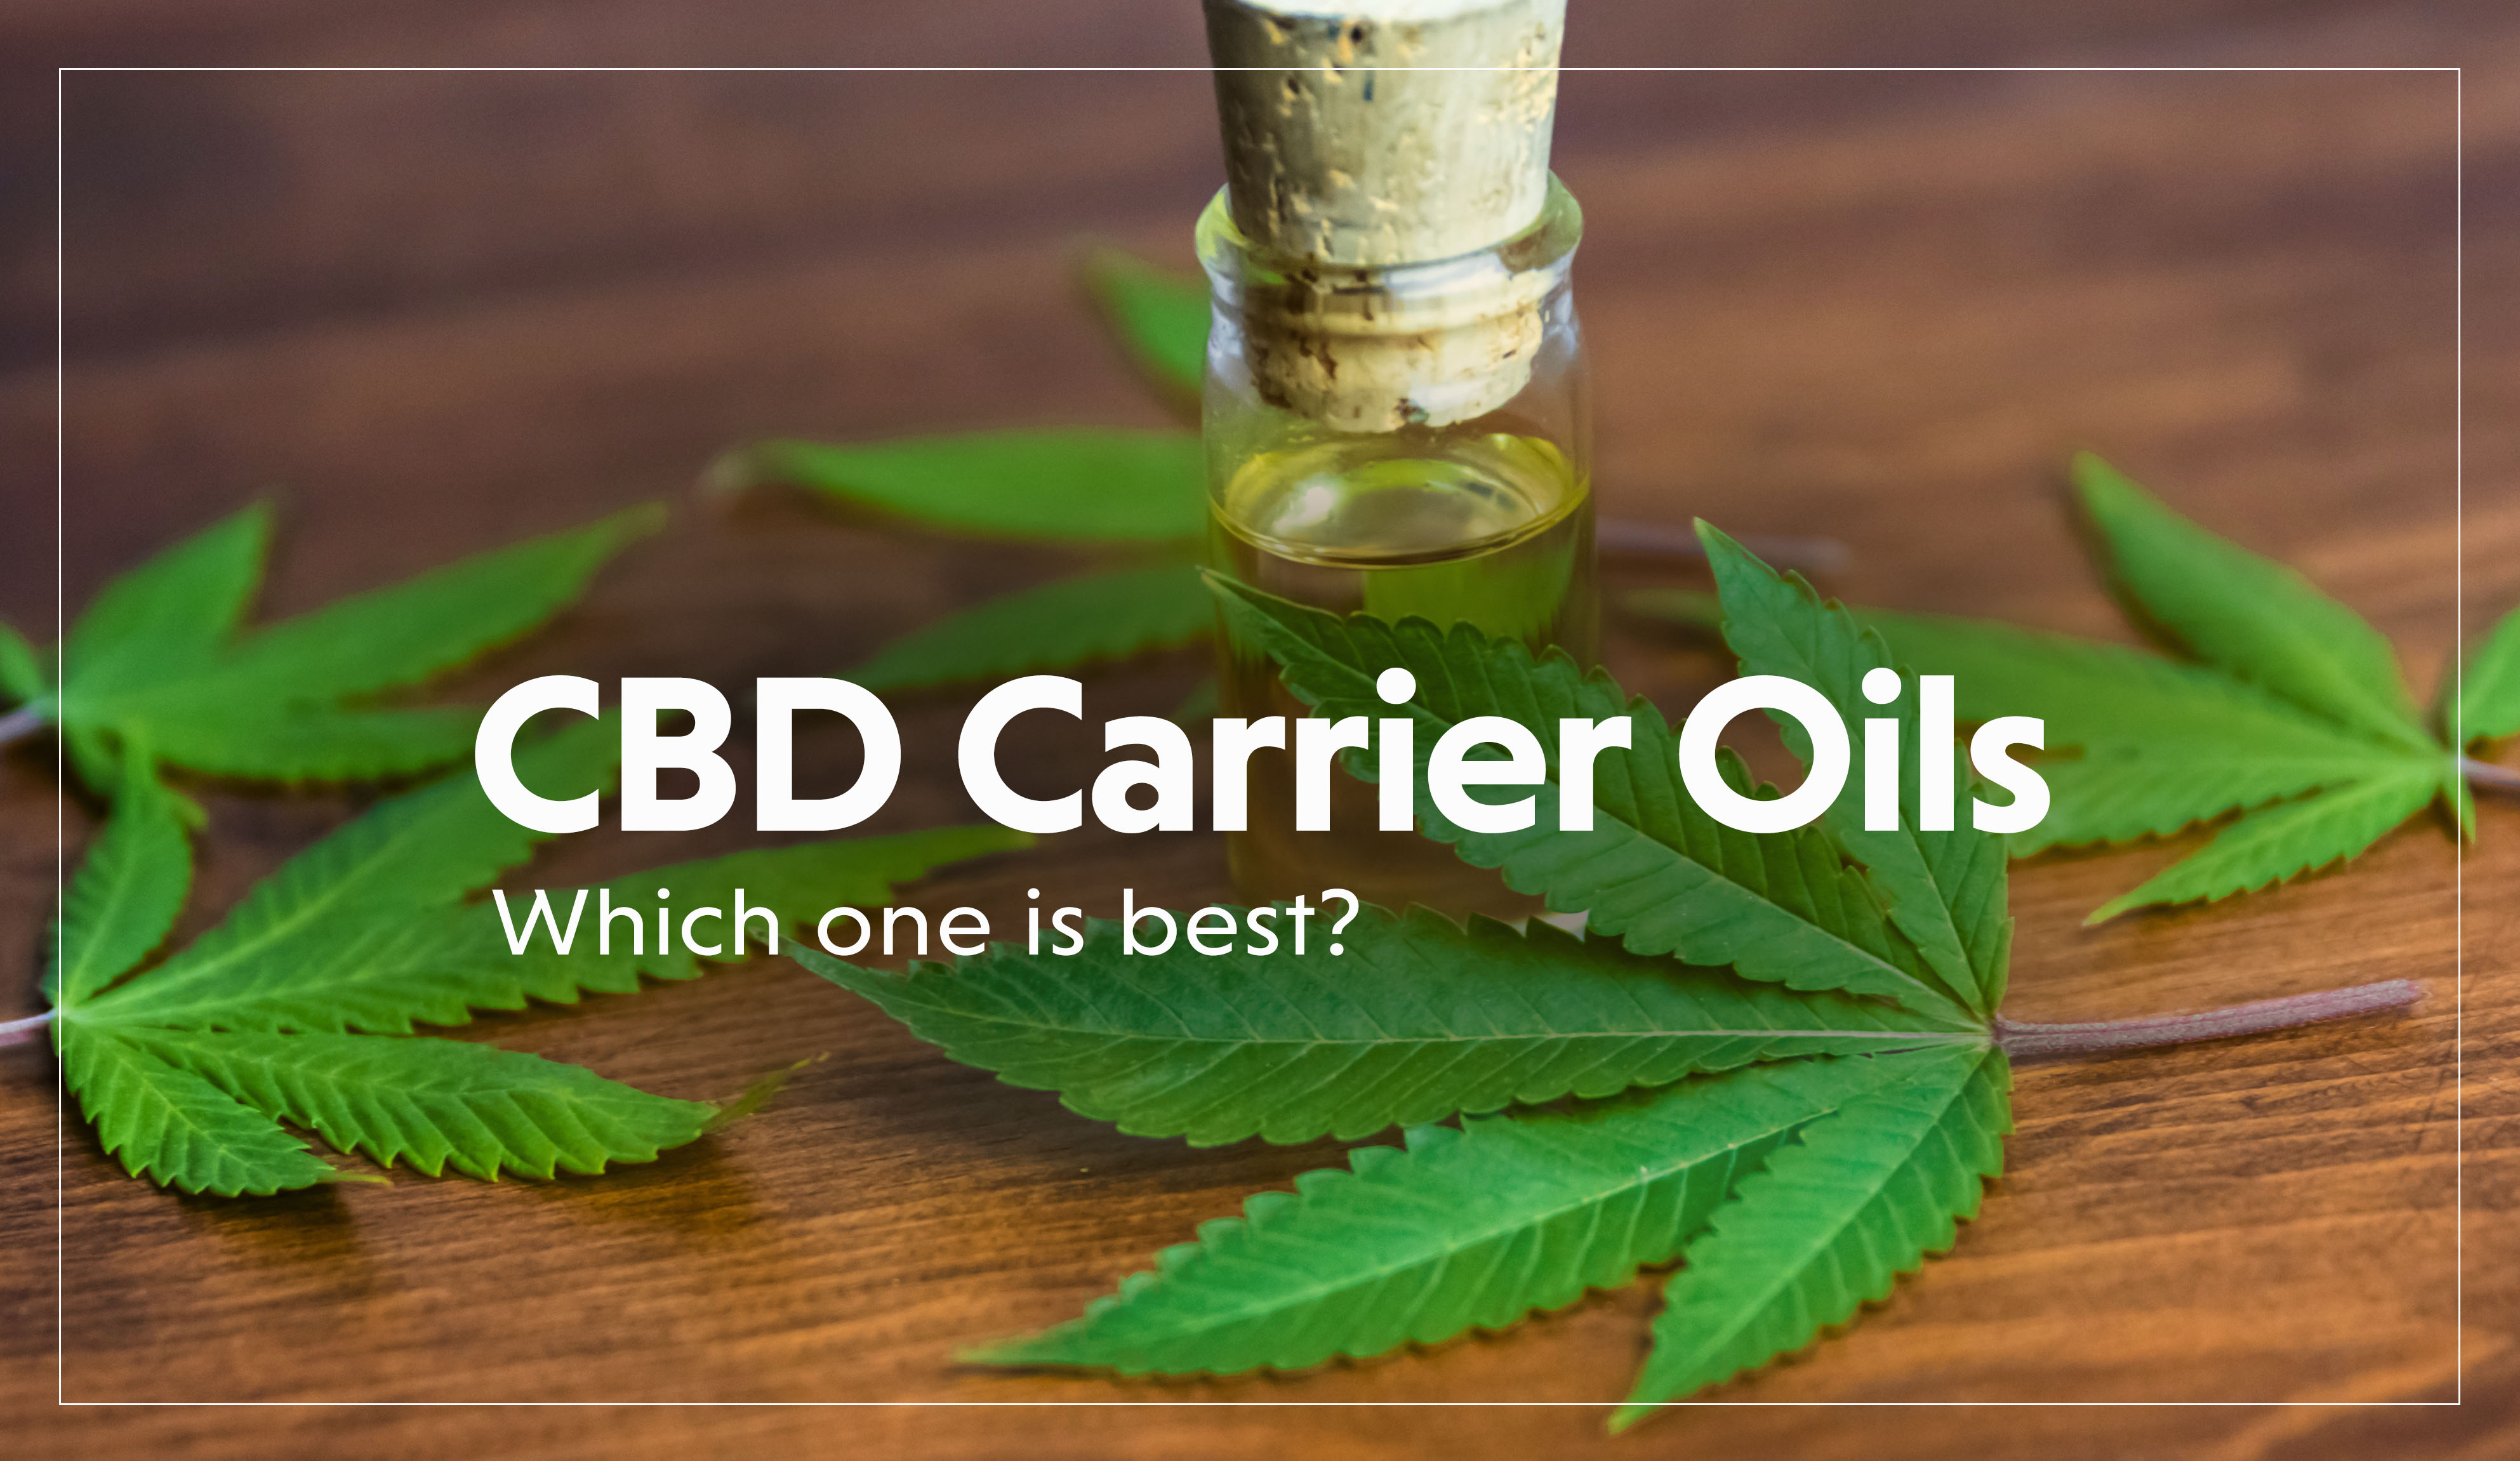 CBD Carrier Oils